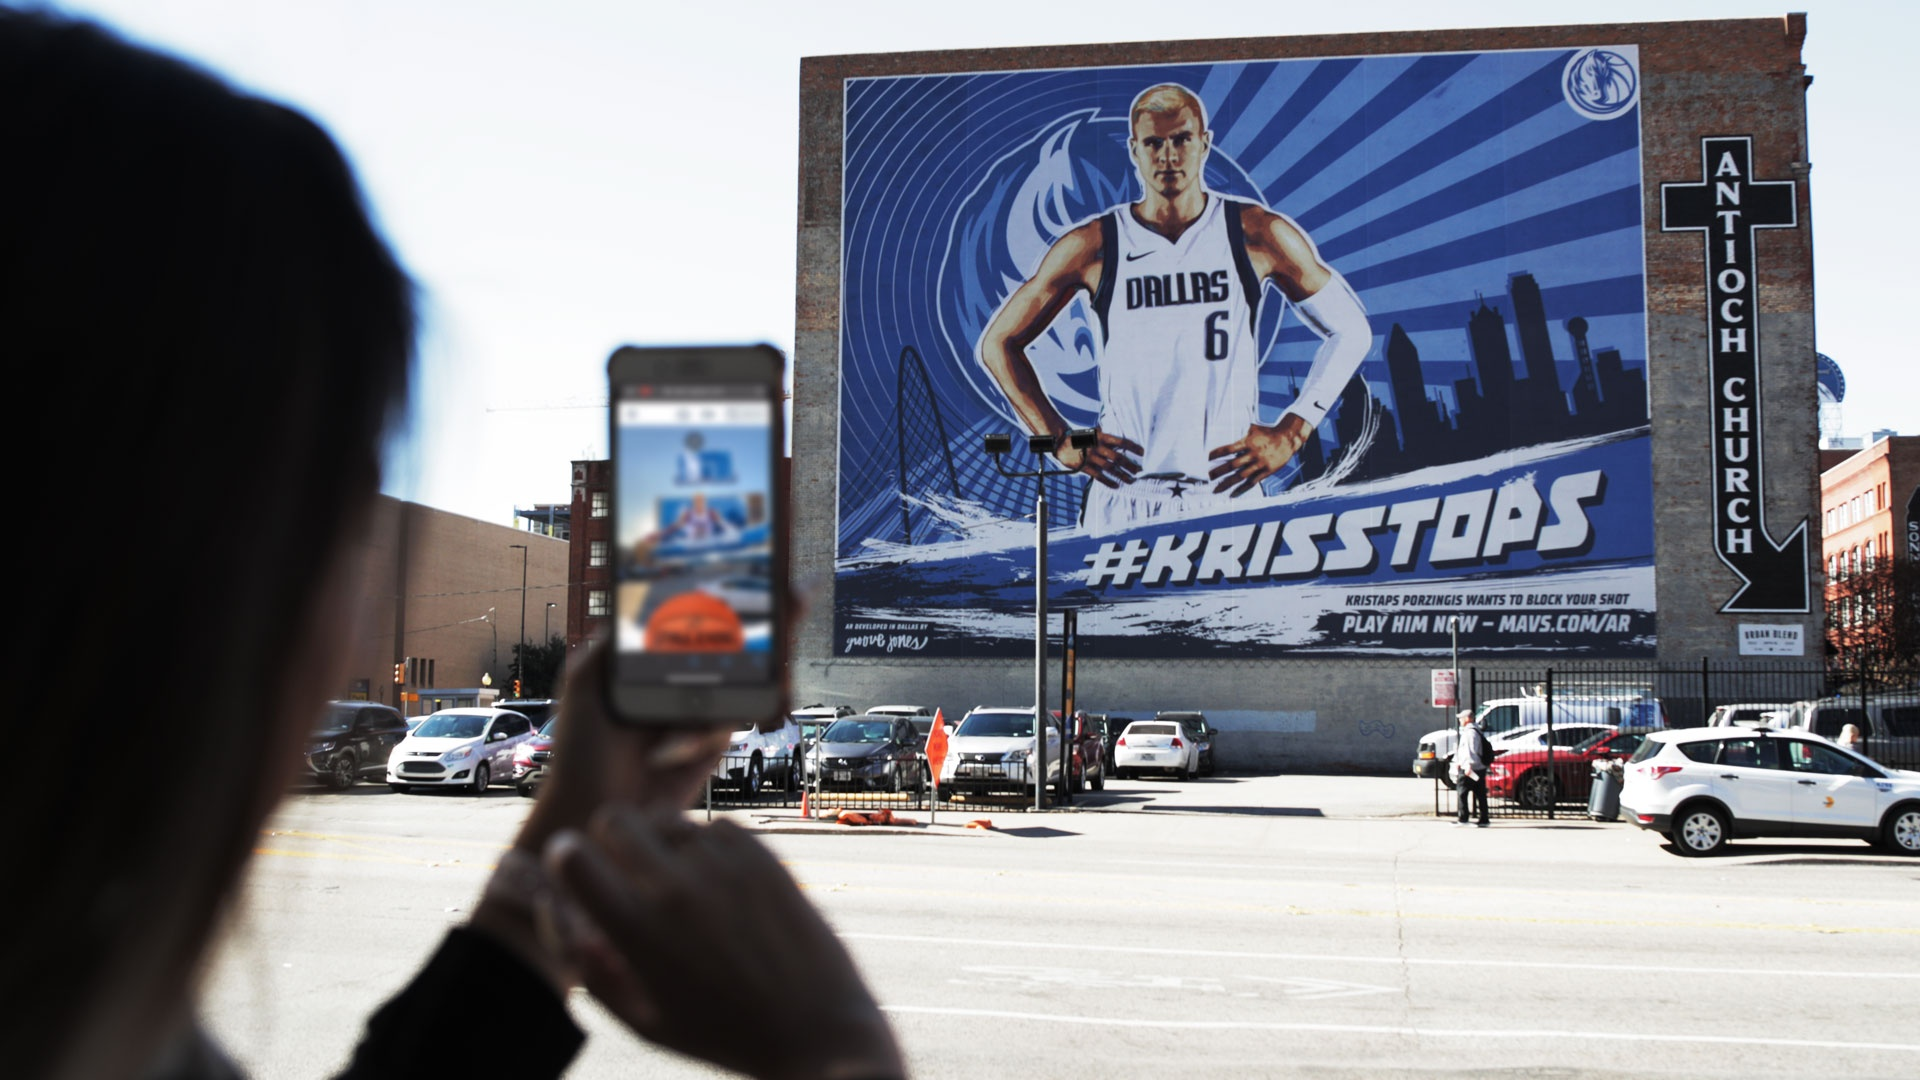 Image Media for Dallas Mavericks - #KRISSTOPS